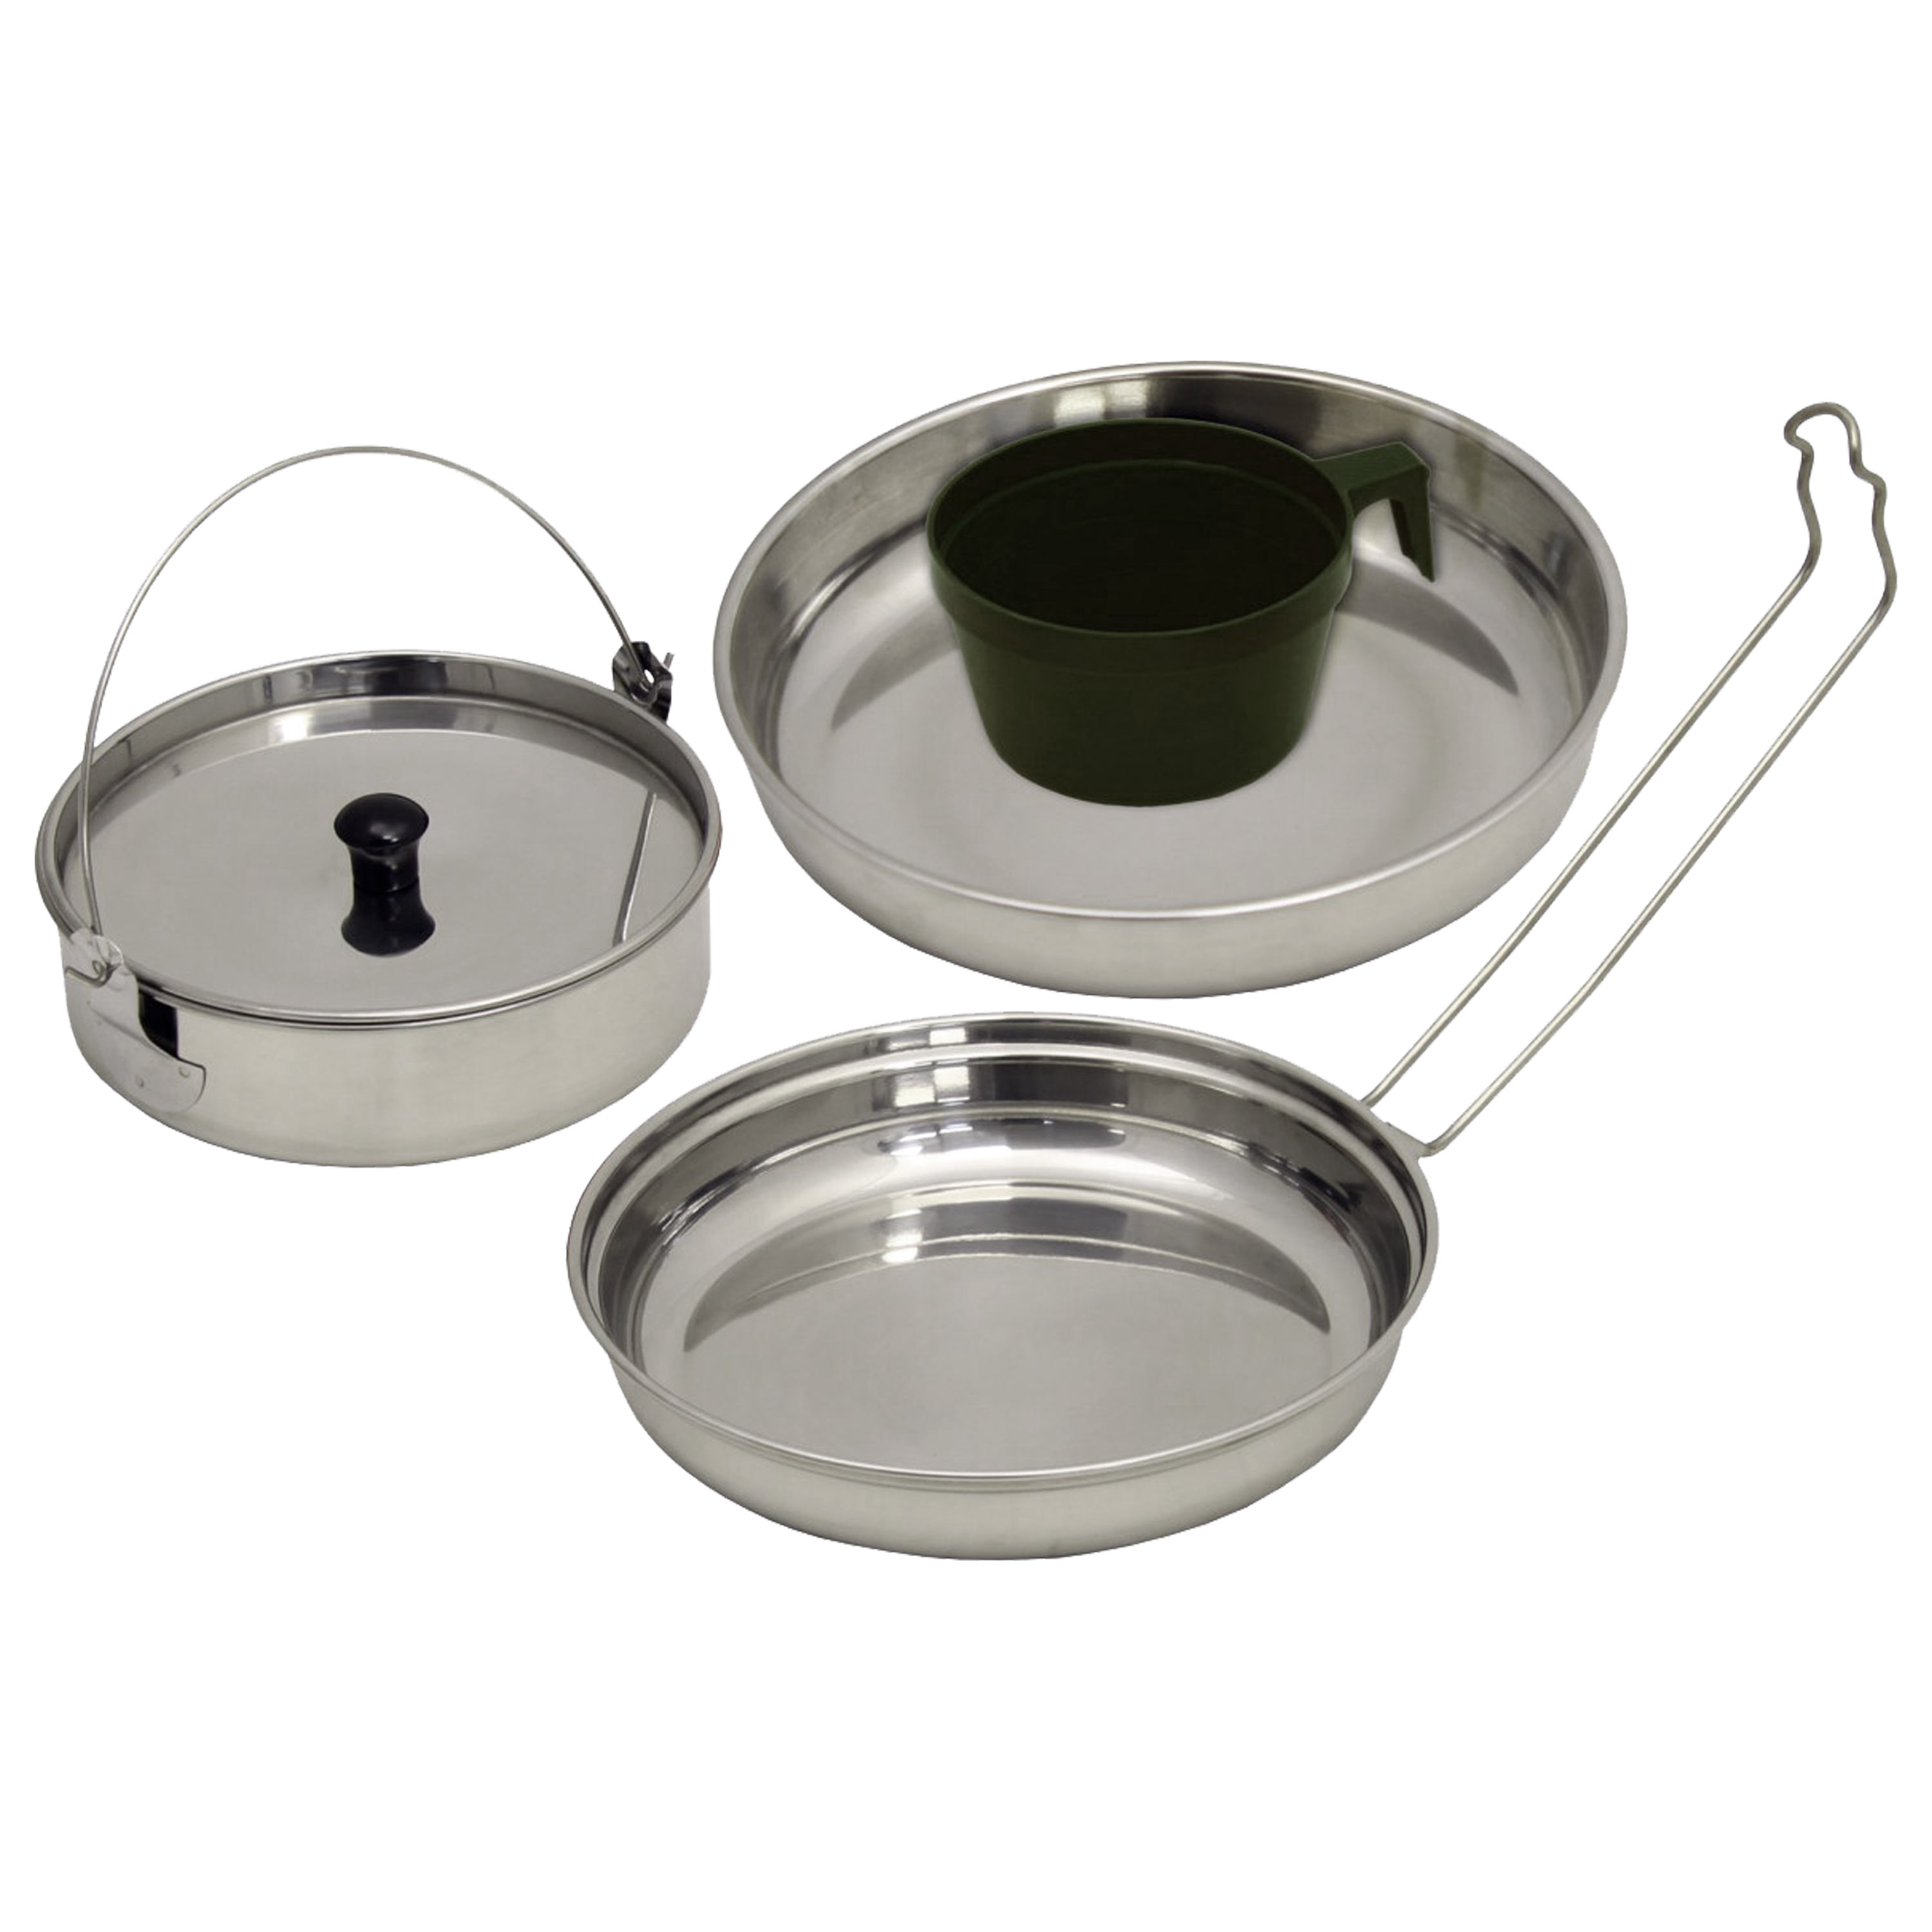 Piece Stainless Steel Cookware Set By Asmc